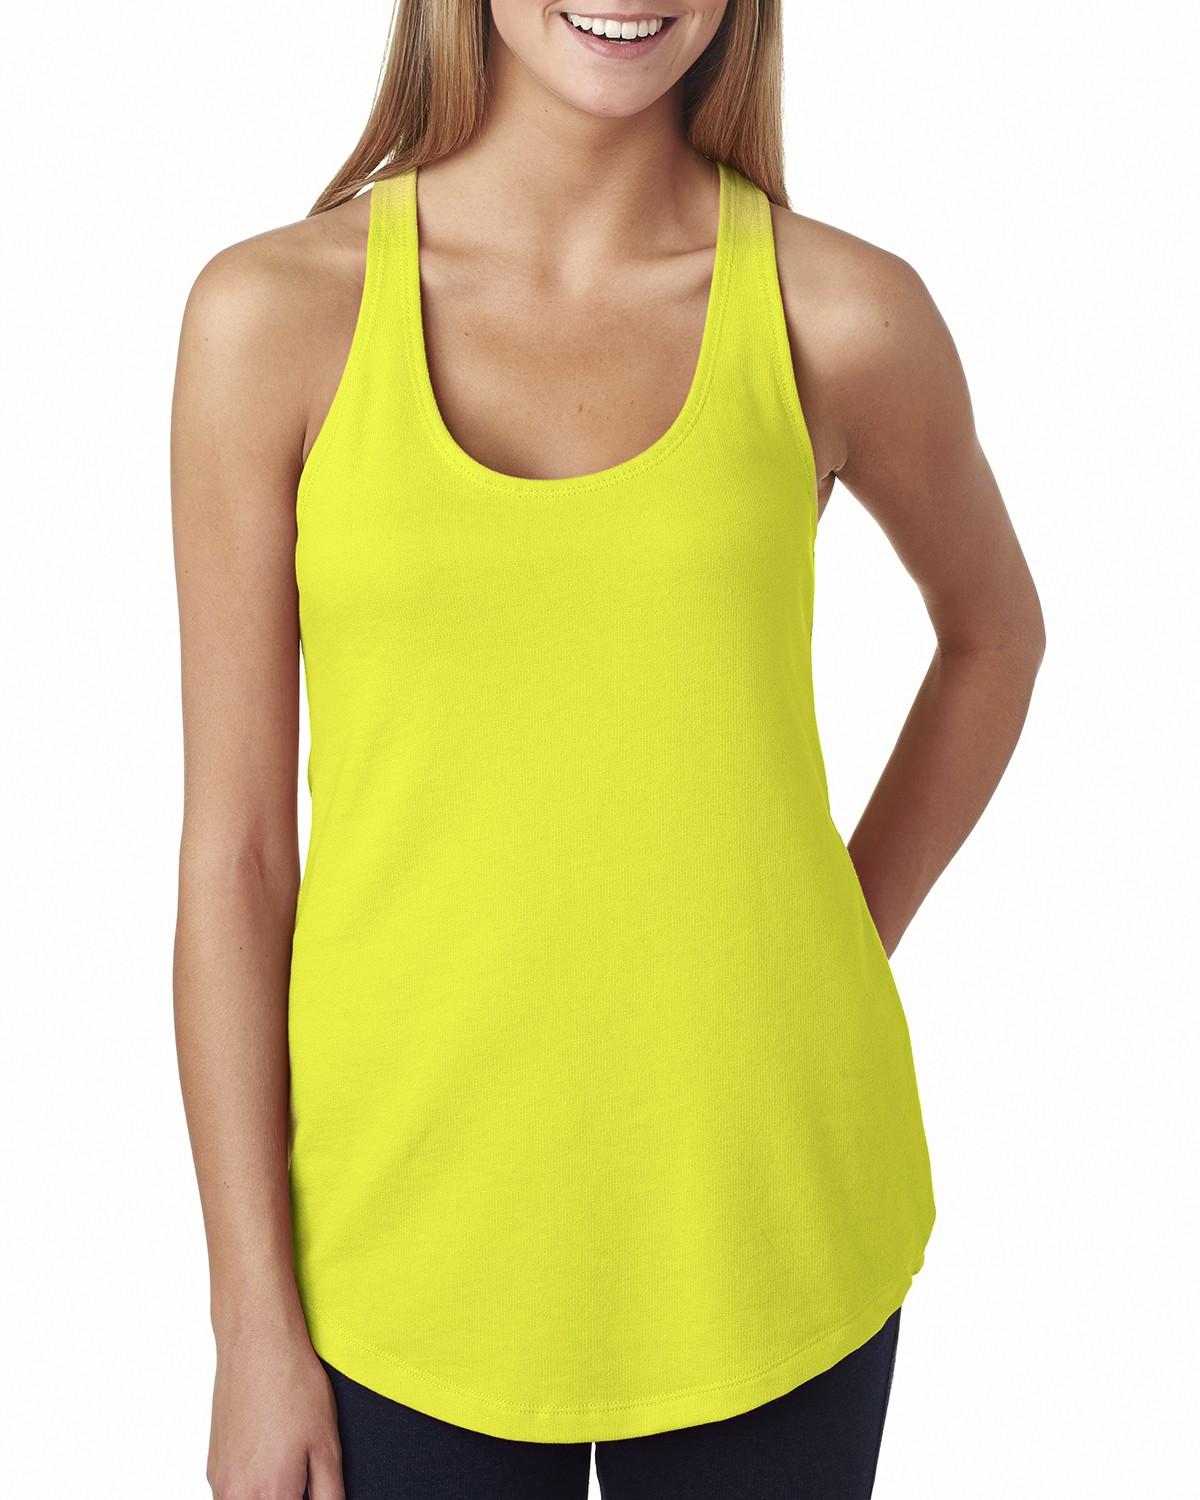 6933 Next Level NEON YELLOW